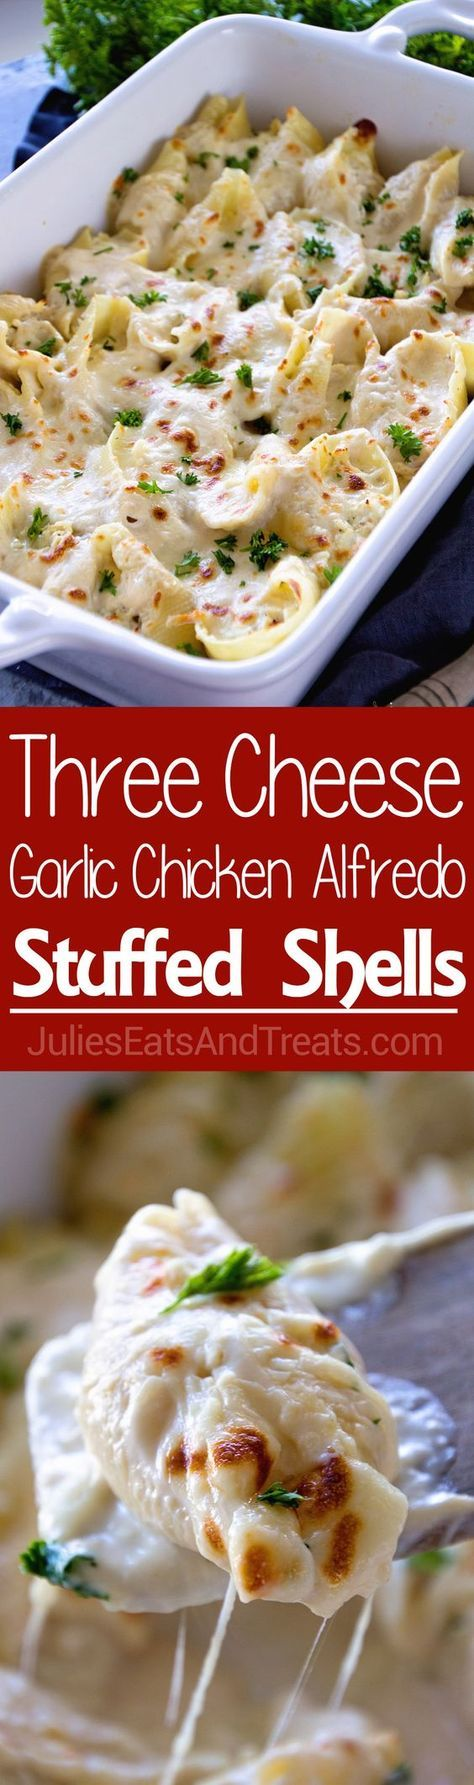 Chicken Alfredo Stuffed Shells Recipe ~ Jumbo Pasta Shells Stuffed with Three Kinds of Cheese and Topped with Creamy Alfredo Sauce! Perfect for a Quick, Easy Dinner or Lunch! (Italian Recipes Stuffed Shells)